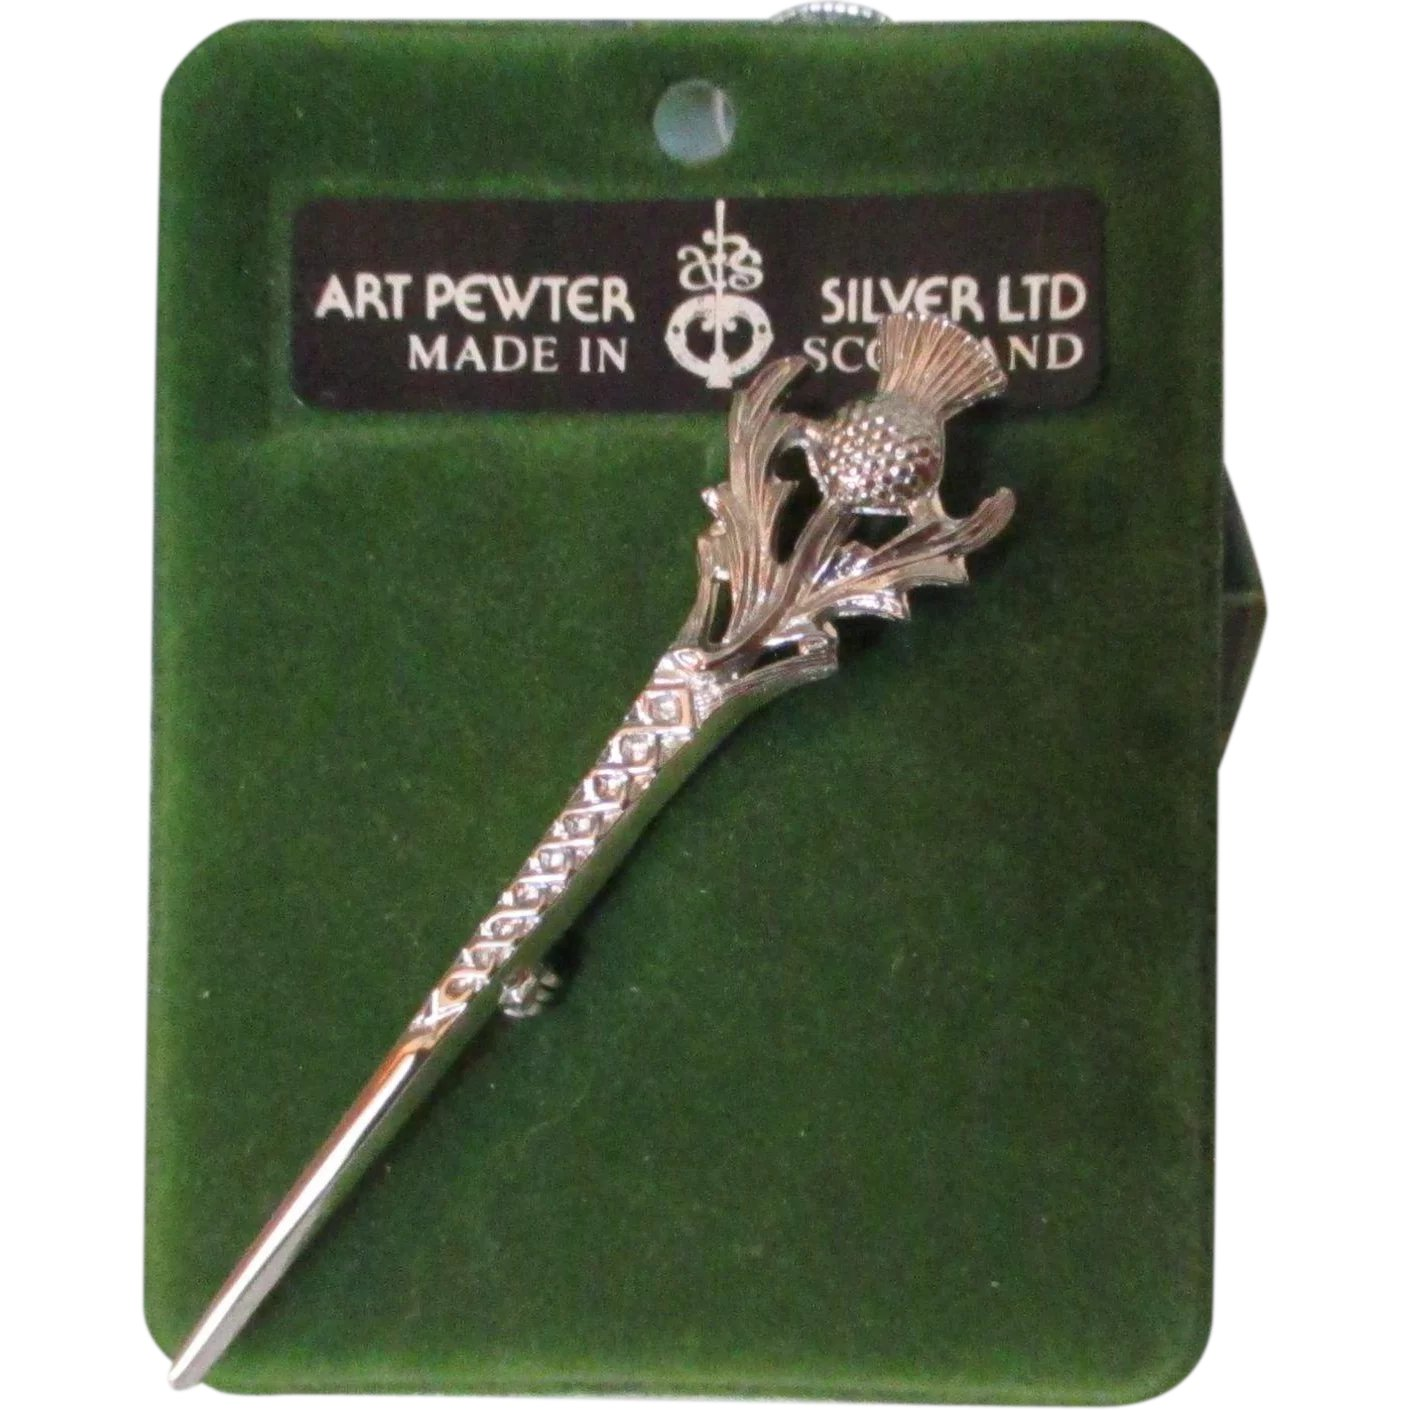 lead free English Pewter handmade in Sheffield uk Q199 Hats etc Dolphin  on a 3 inch Kilt Pin  Brooch for Scarves